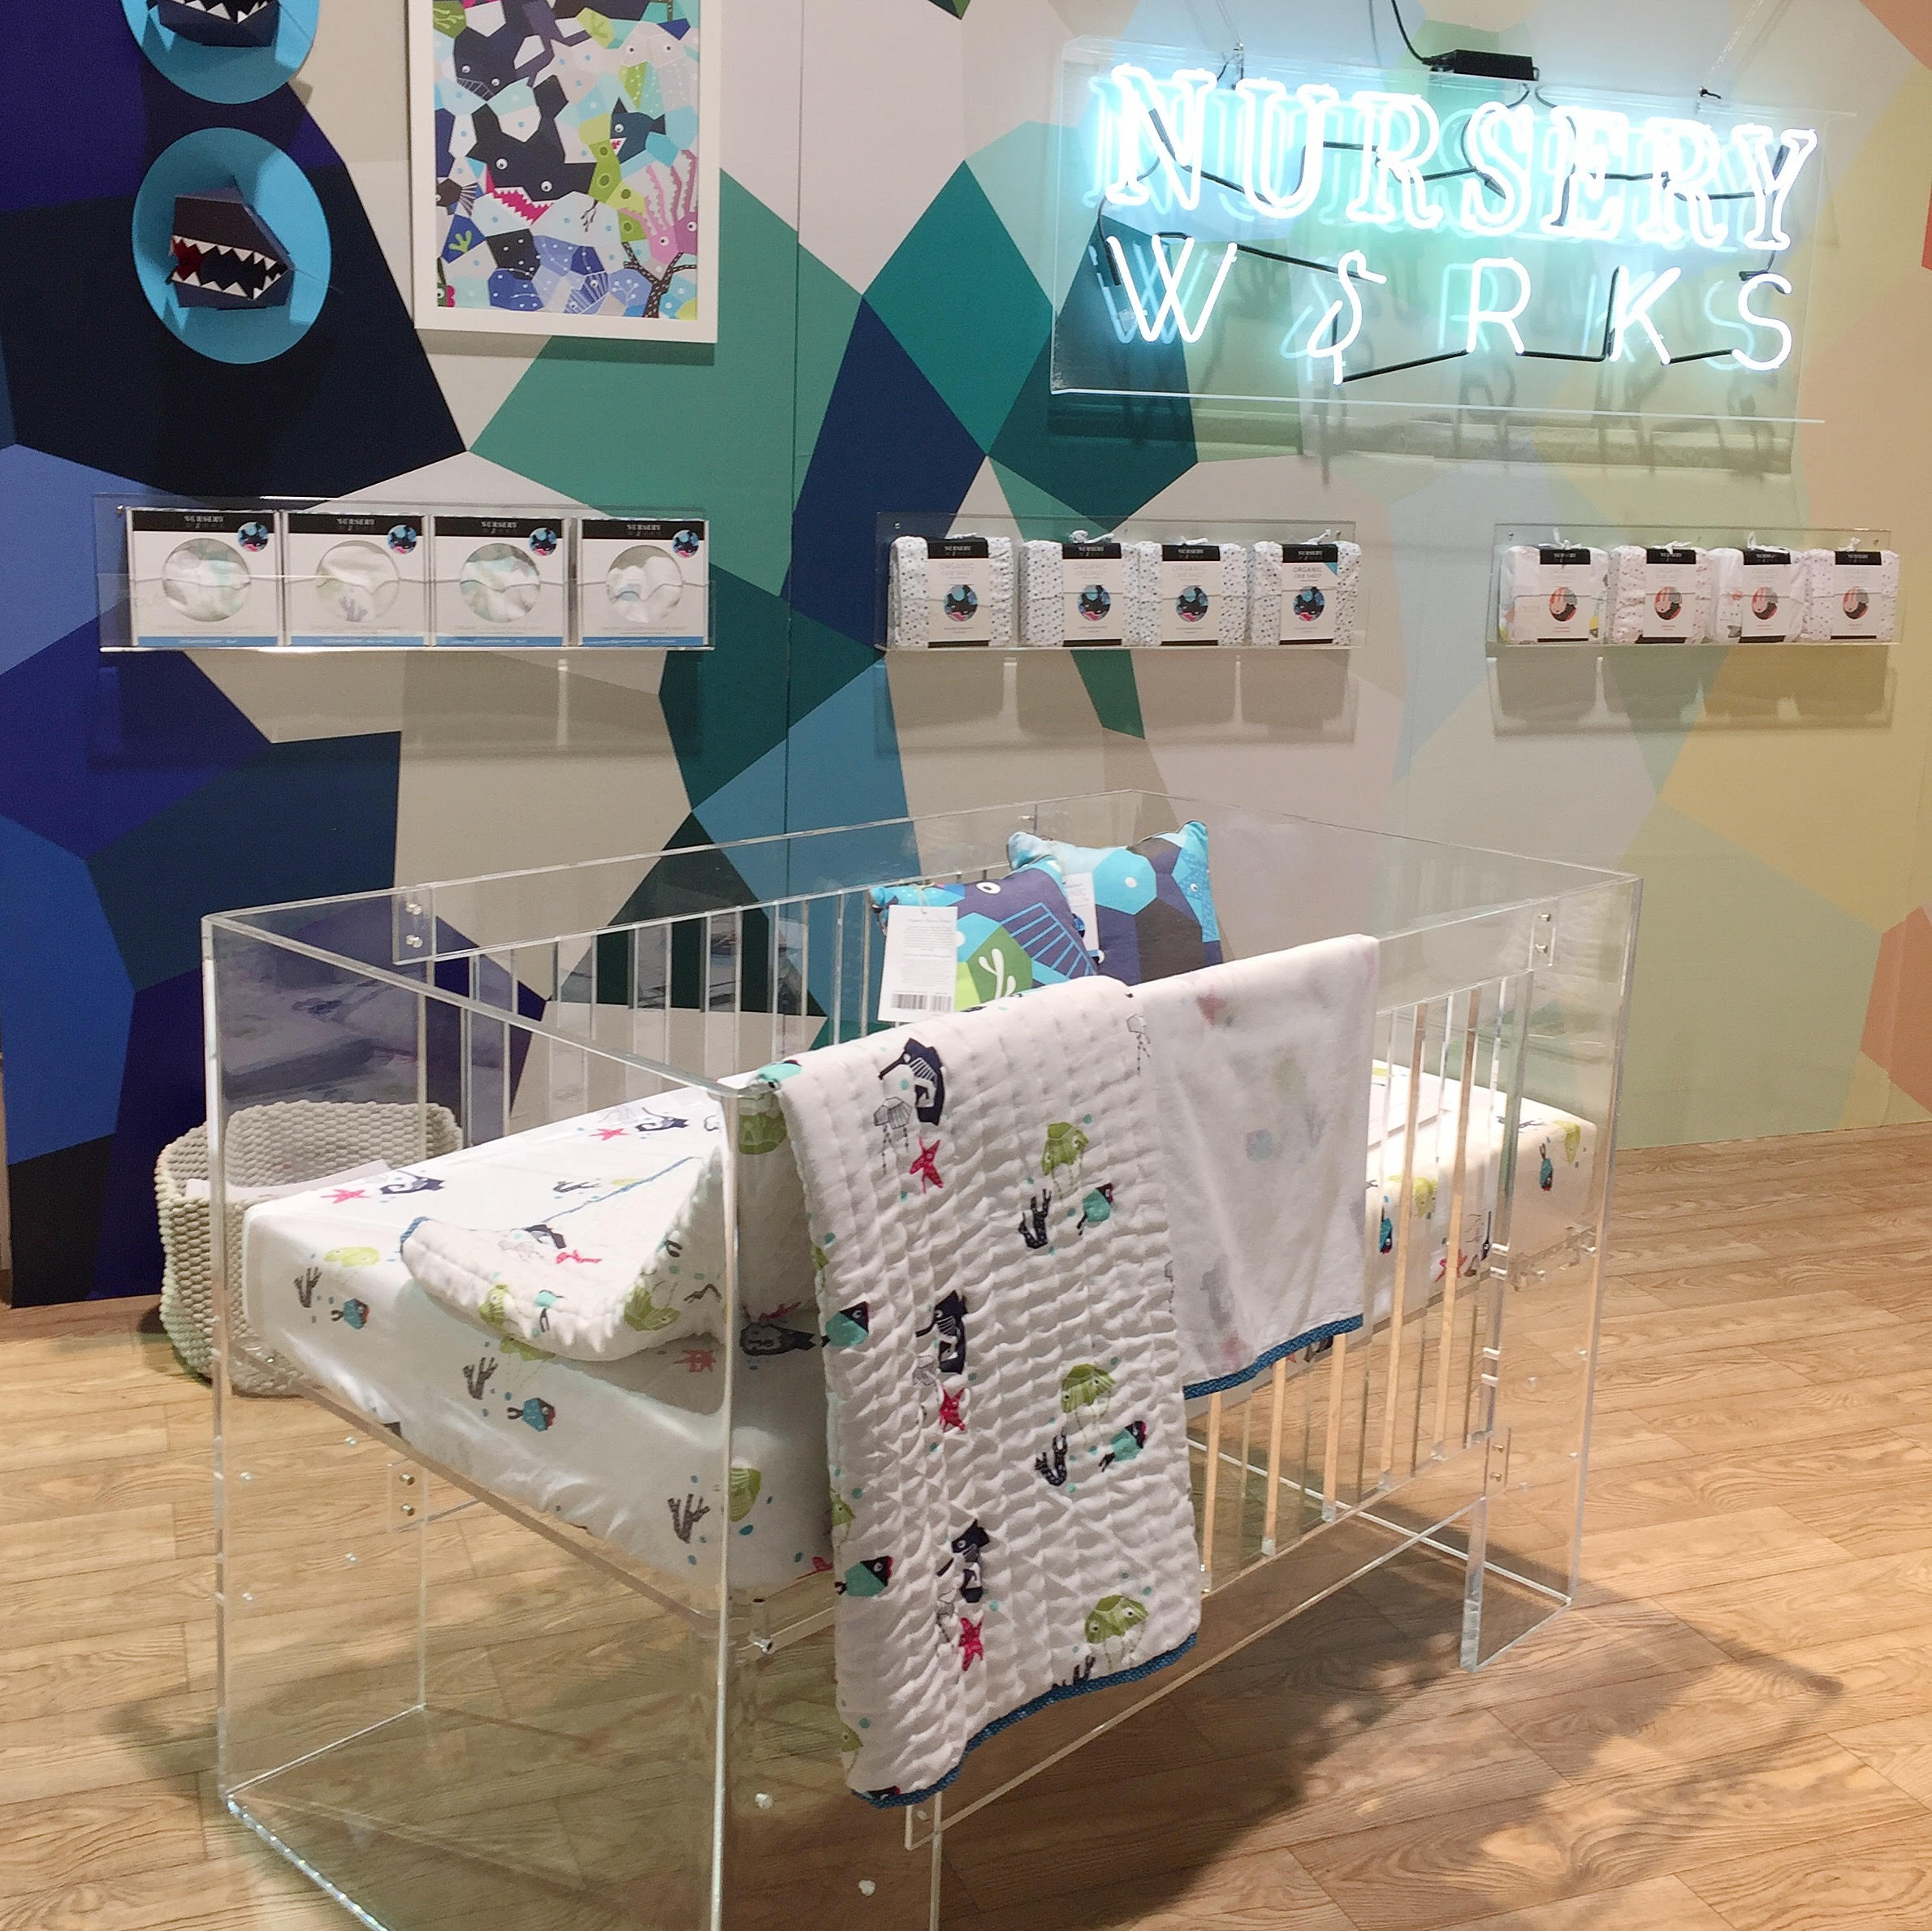 Top Baby Gear Trends for 2016 Nursery Works Acrylic Crib | Momma Society-The Community of Modern Moms | www.mommasociety.com | Join our community on Instagram @MommaSociety